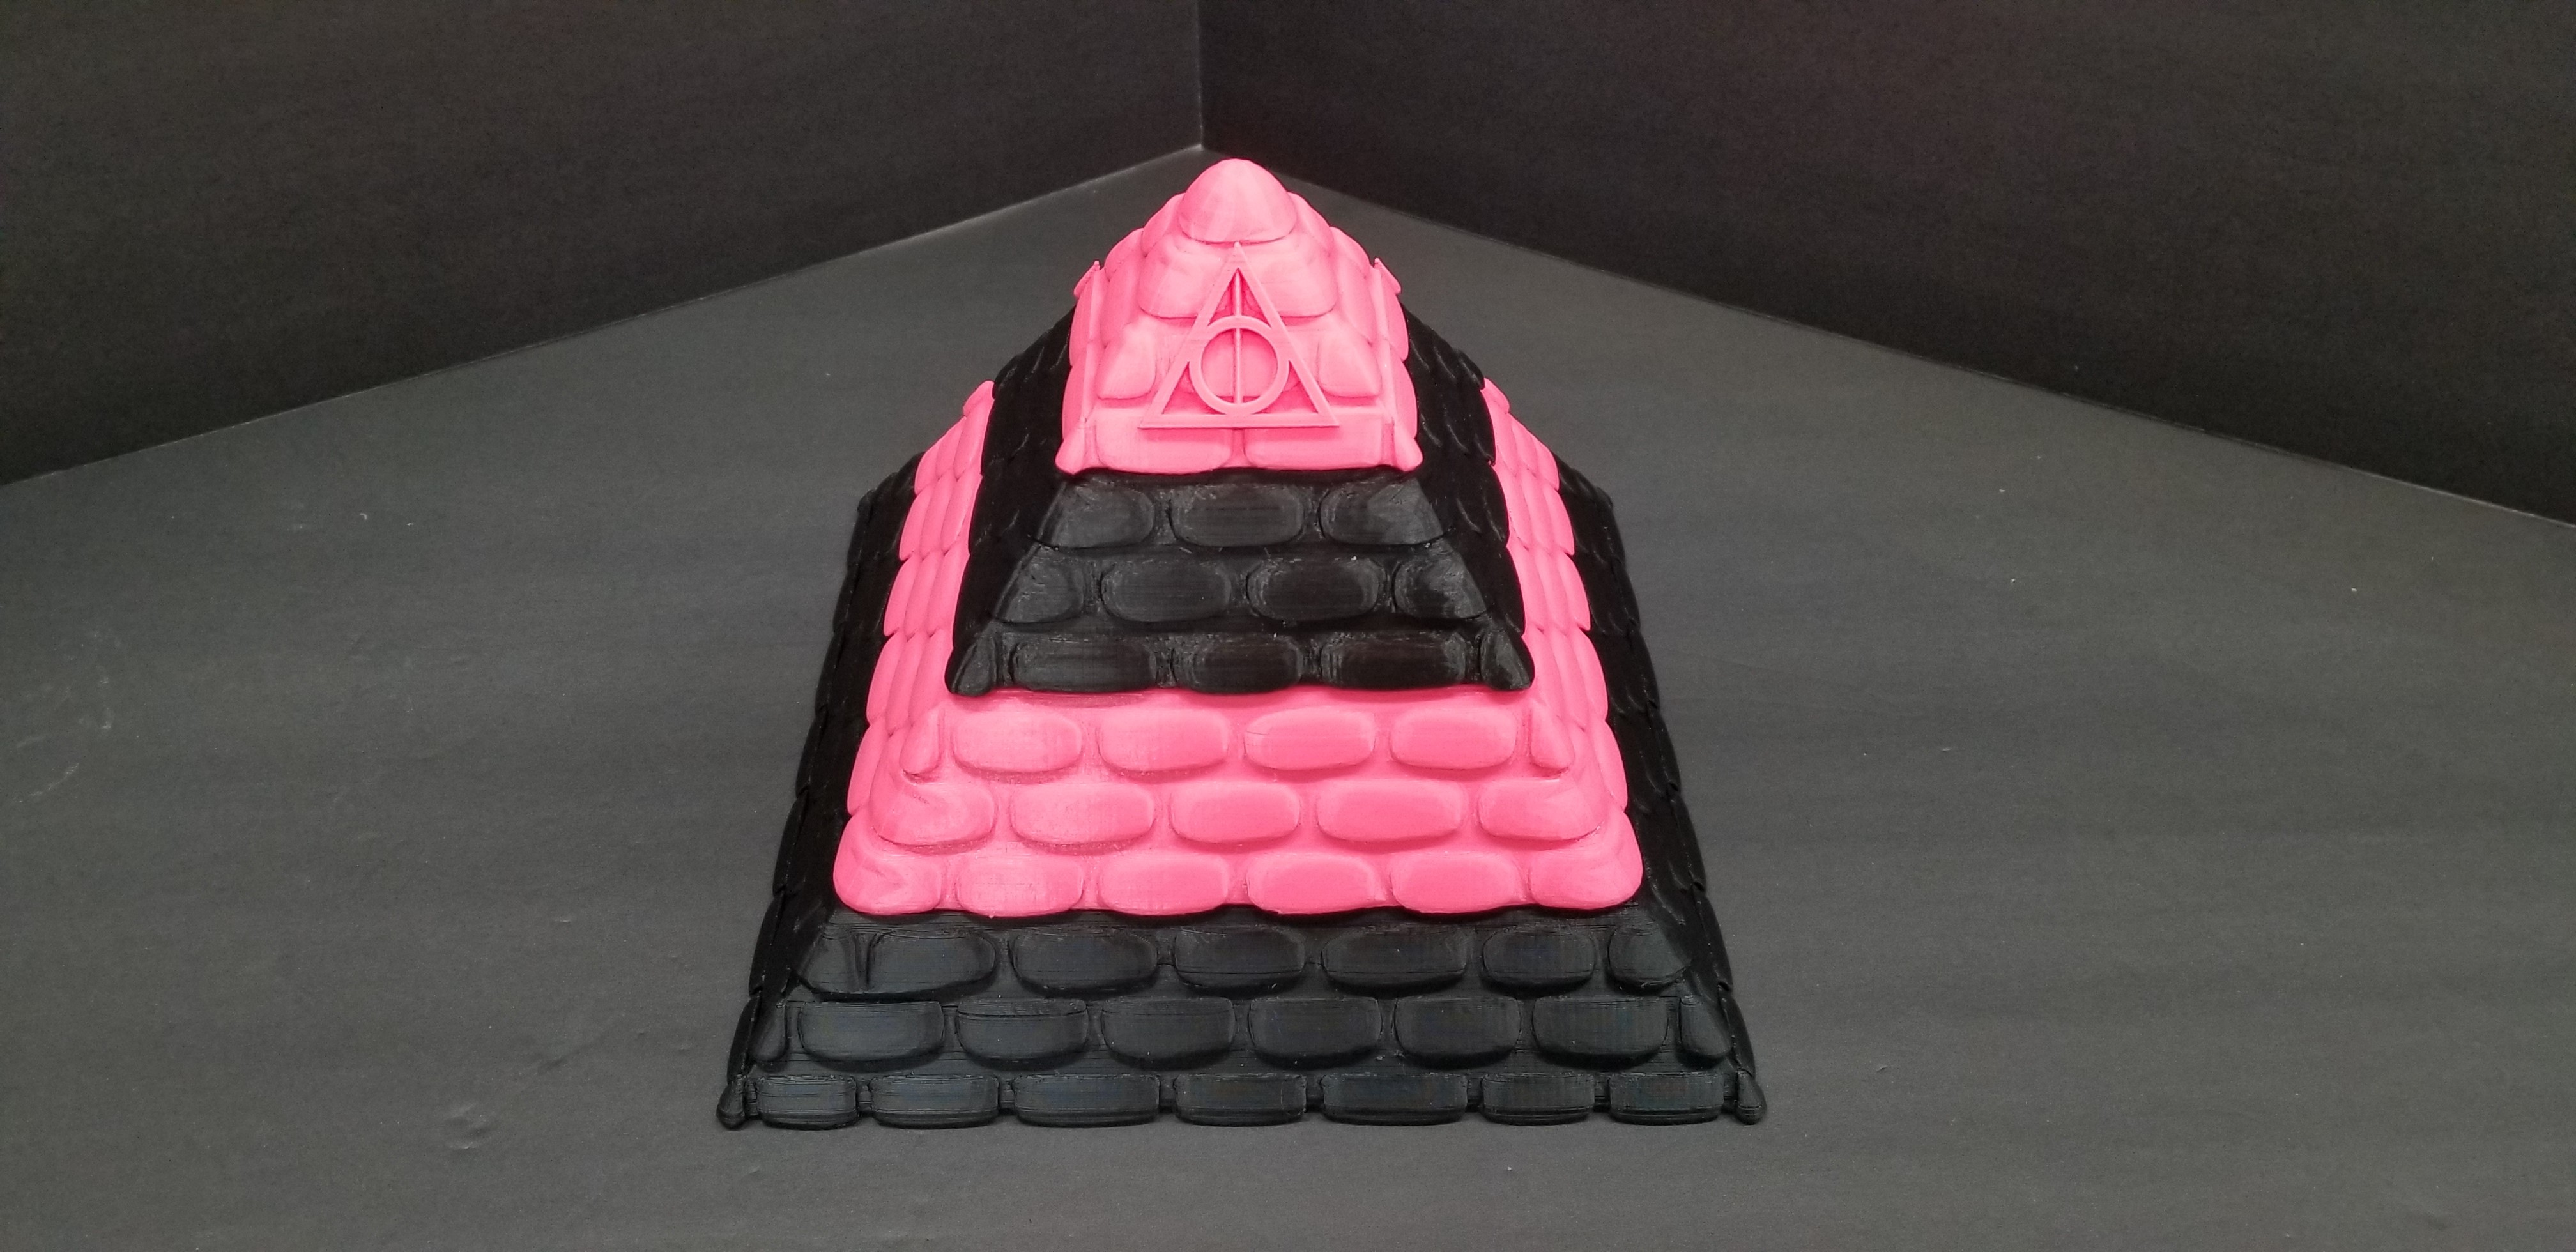 20190528_181505.jpg Download free STL file POTTER PYRAMID BOX with a Chamber of secrets • Template to 3D print, LittleTup